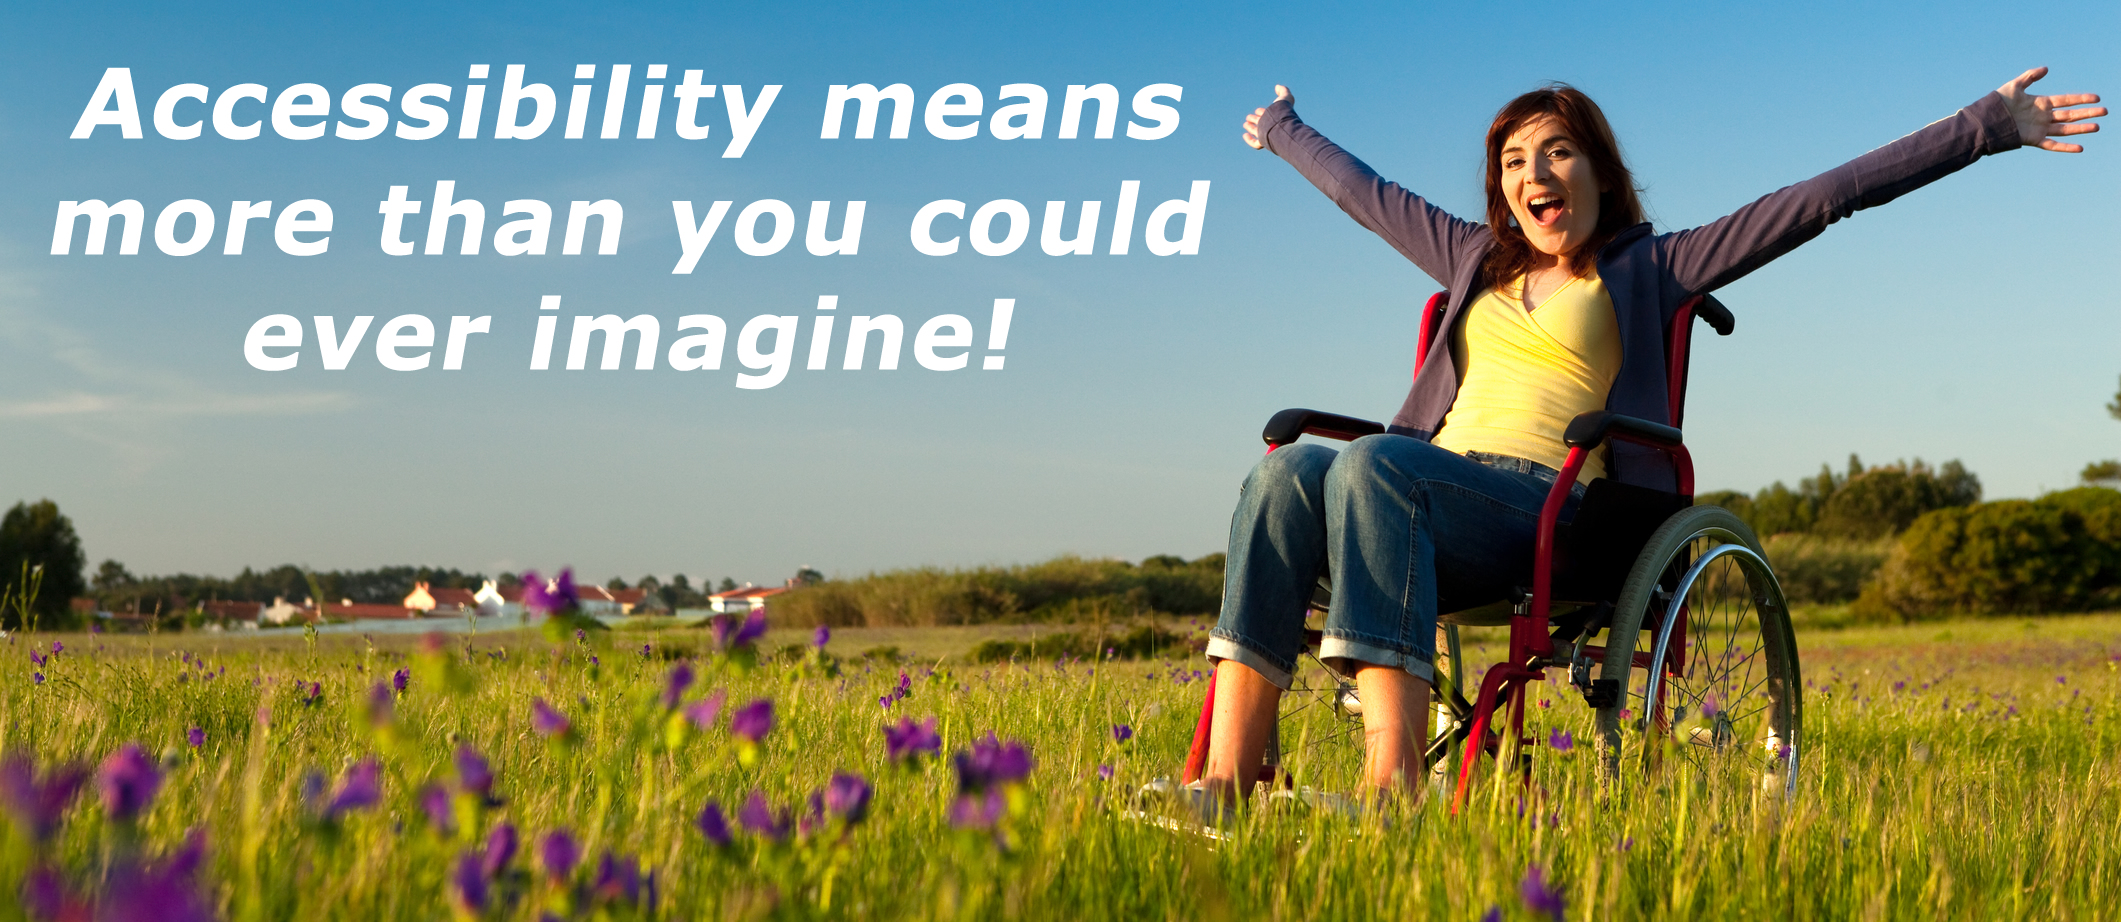 DIY Accessibility banner shows girl in wheelchair in field of flowers.